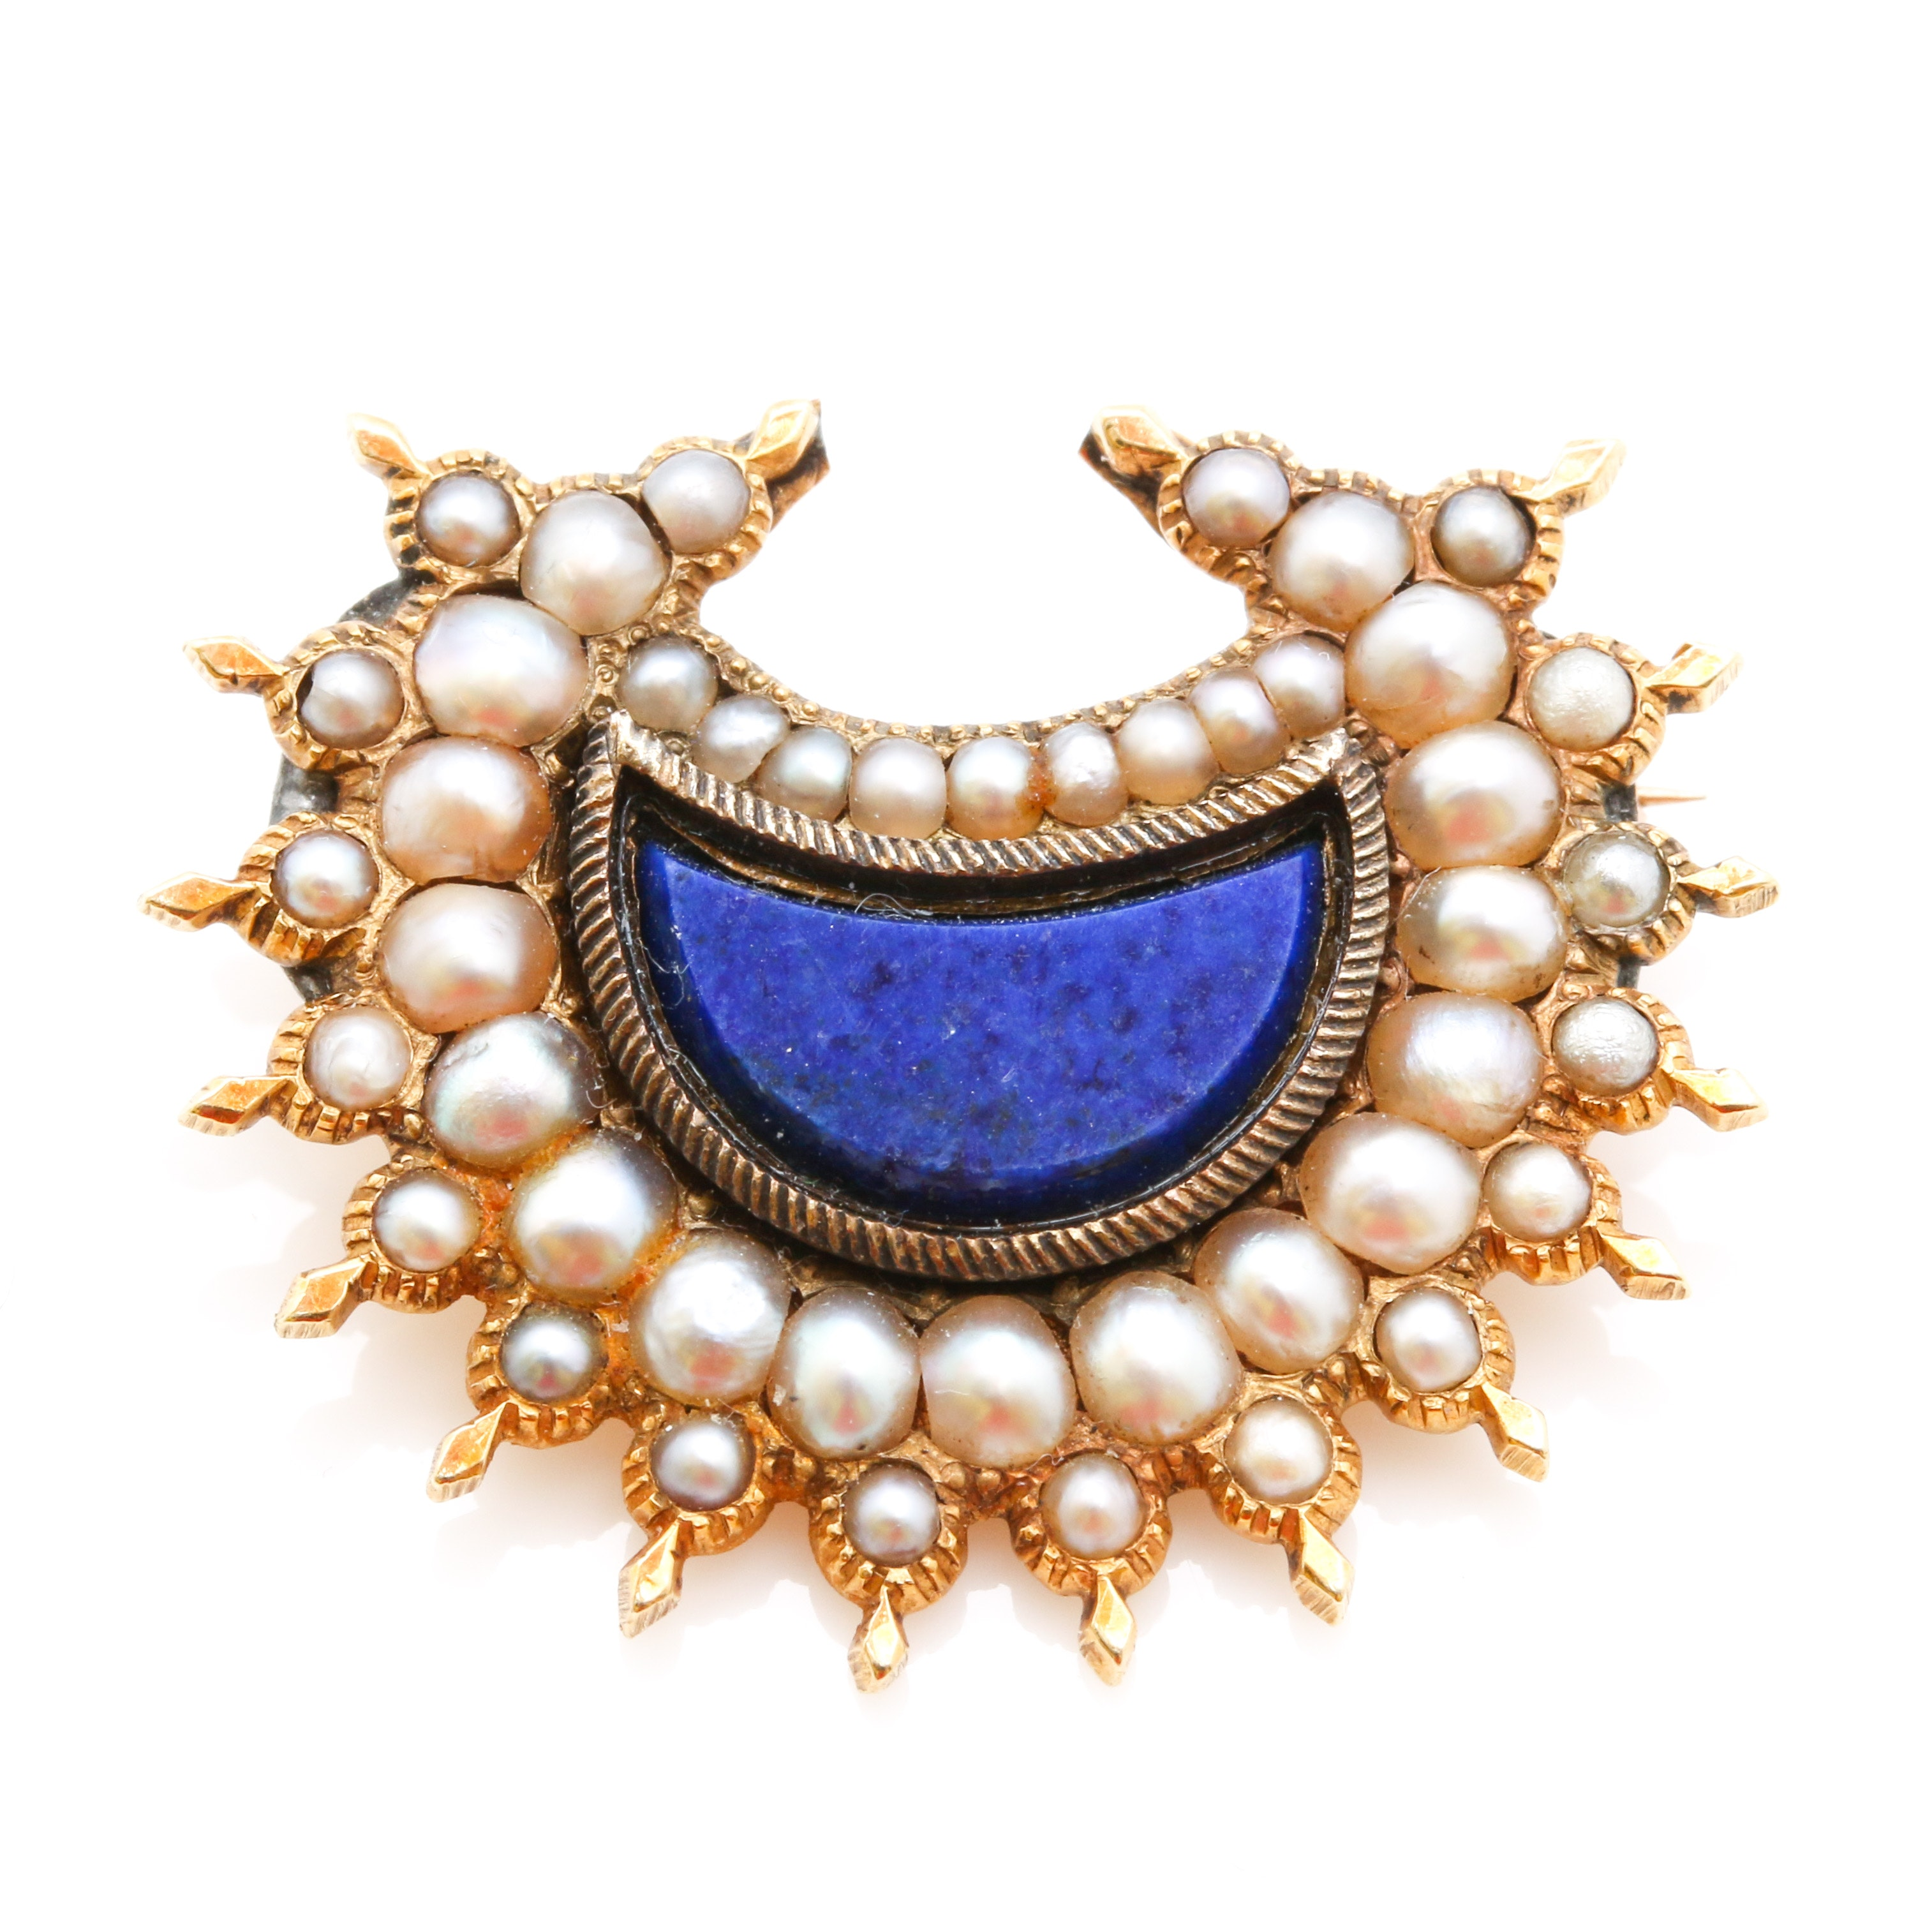 14K Yellow Gold Lapis Lazuli and Seed Pearl Brooch